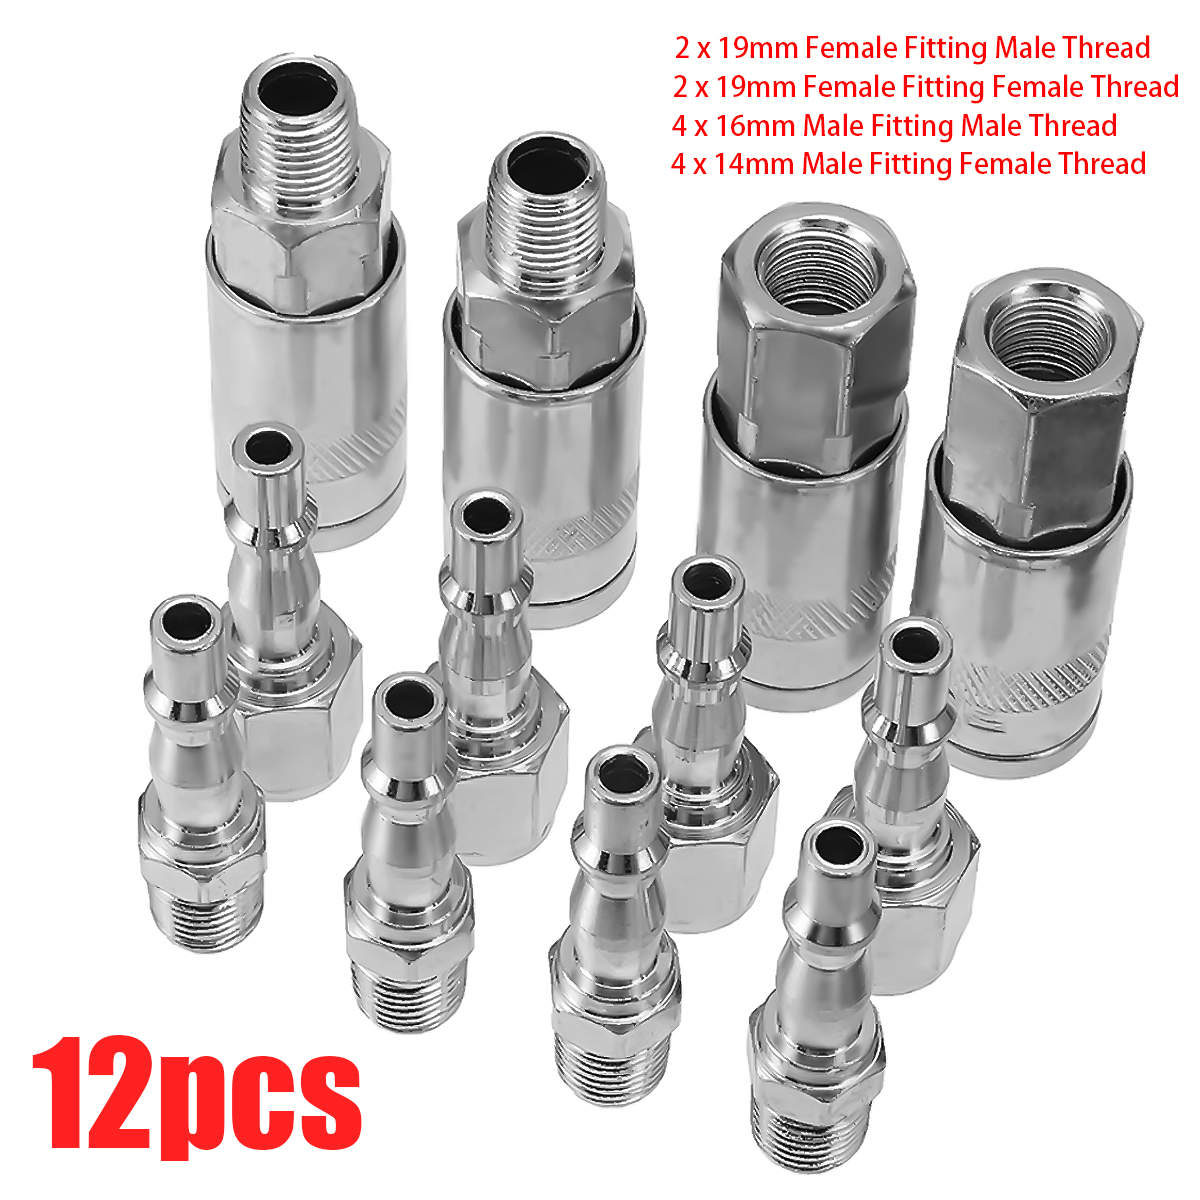 12Pcs 1/4 BSP Air Line Hose Compressor Fitting Couplings Connector Quick Release Male Female Fittings Connector Set bsp female air compressor pneumatic quick coupler connector socket fittings set